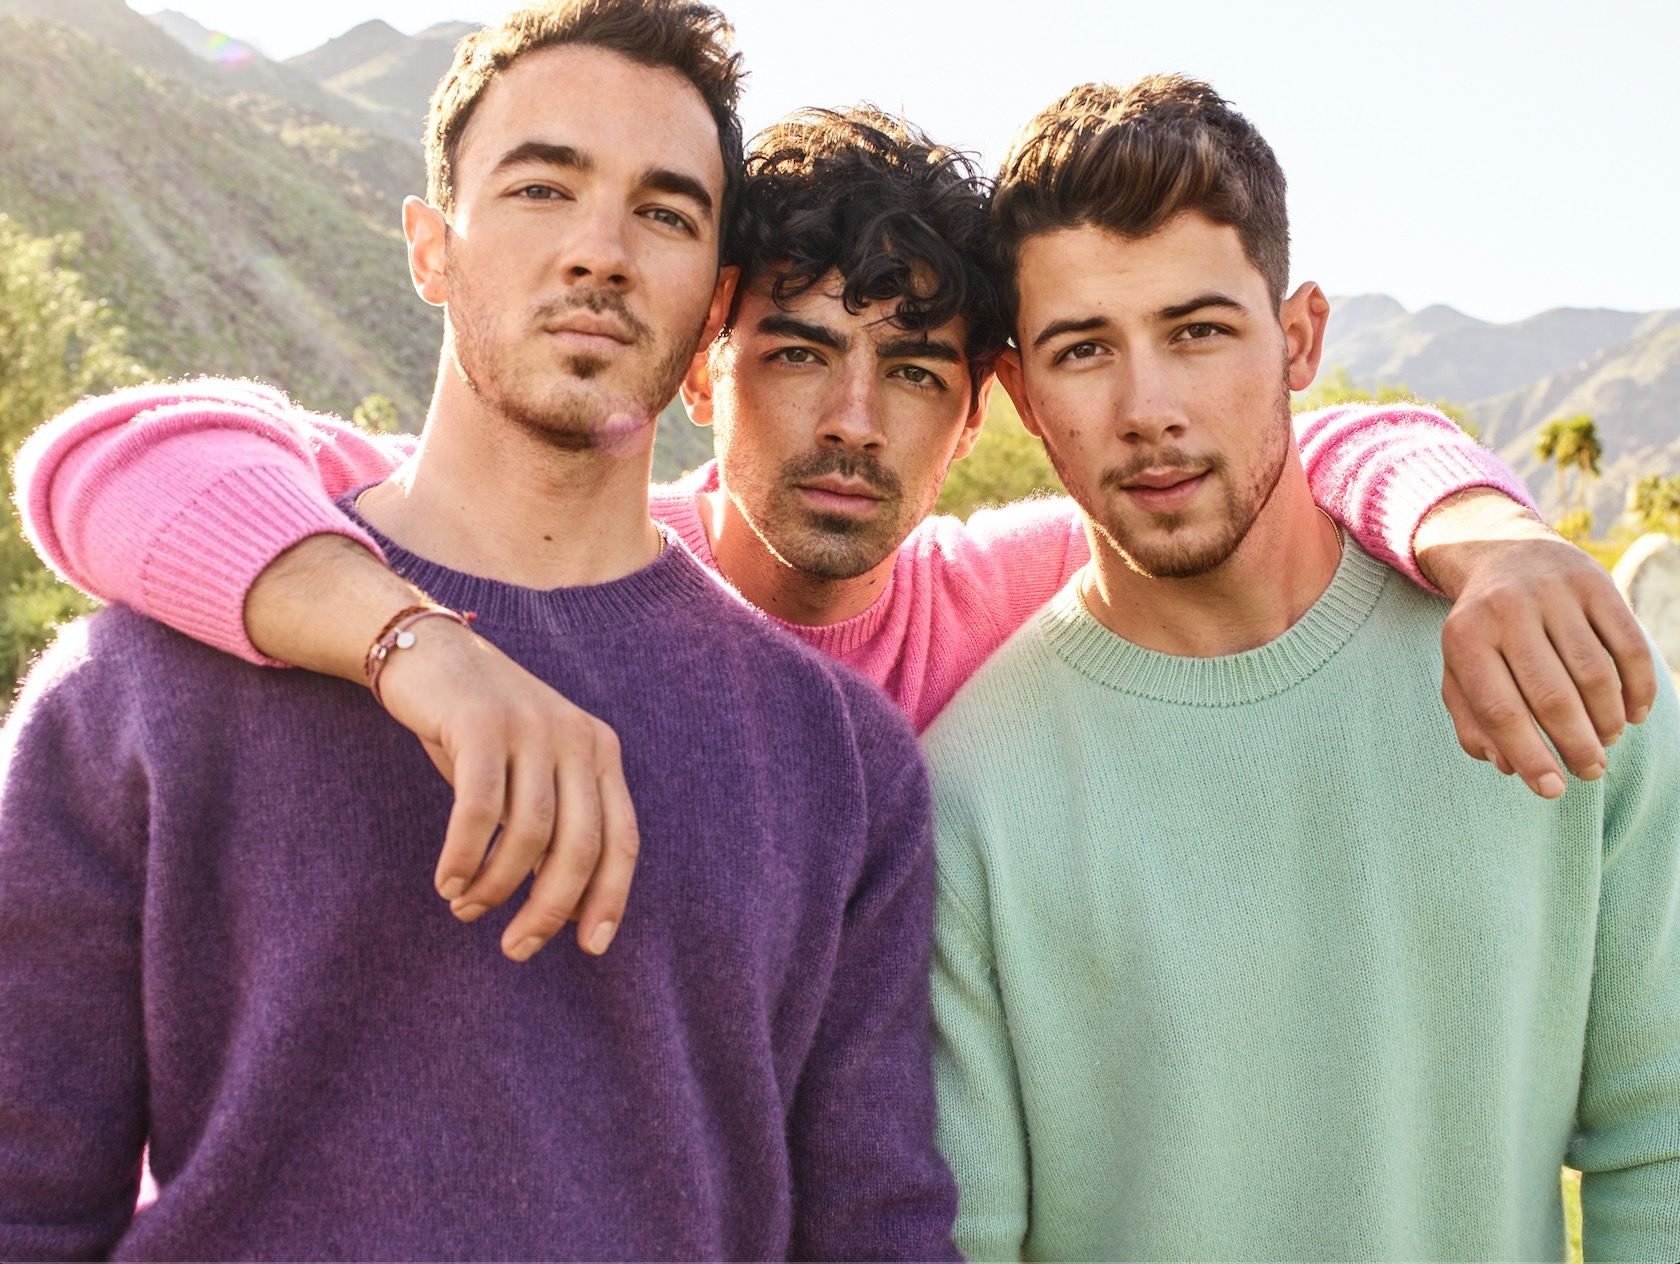 Jonas Brothers host a 20,000-person family reunion with Happiness Begins Tour